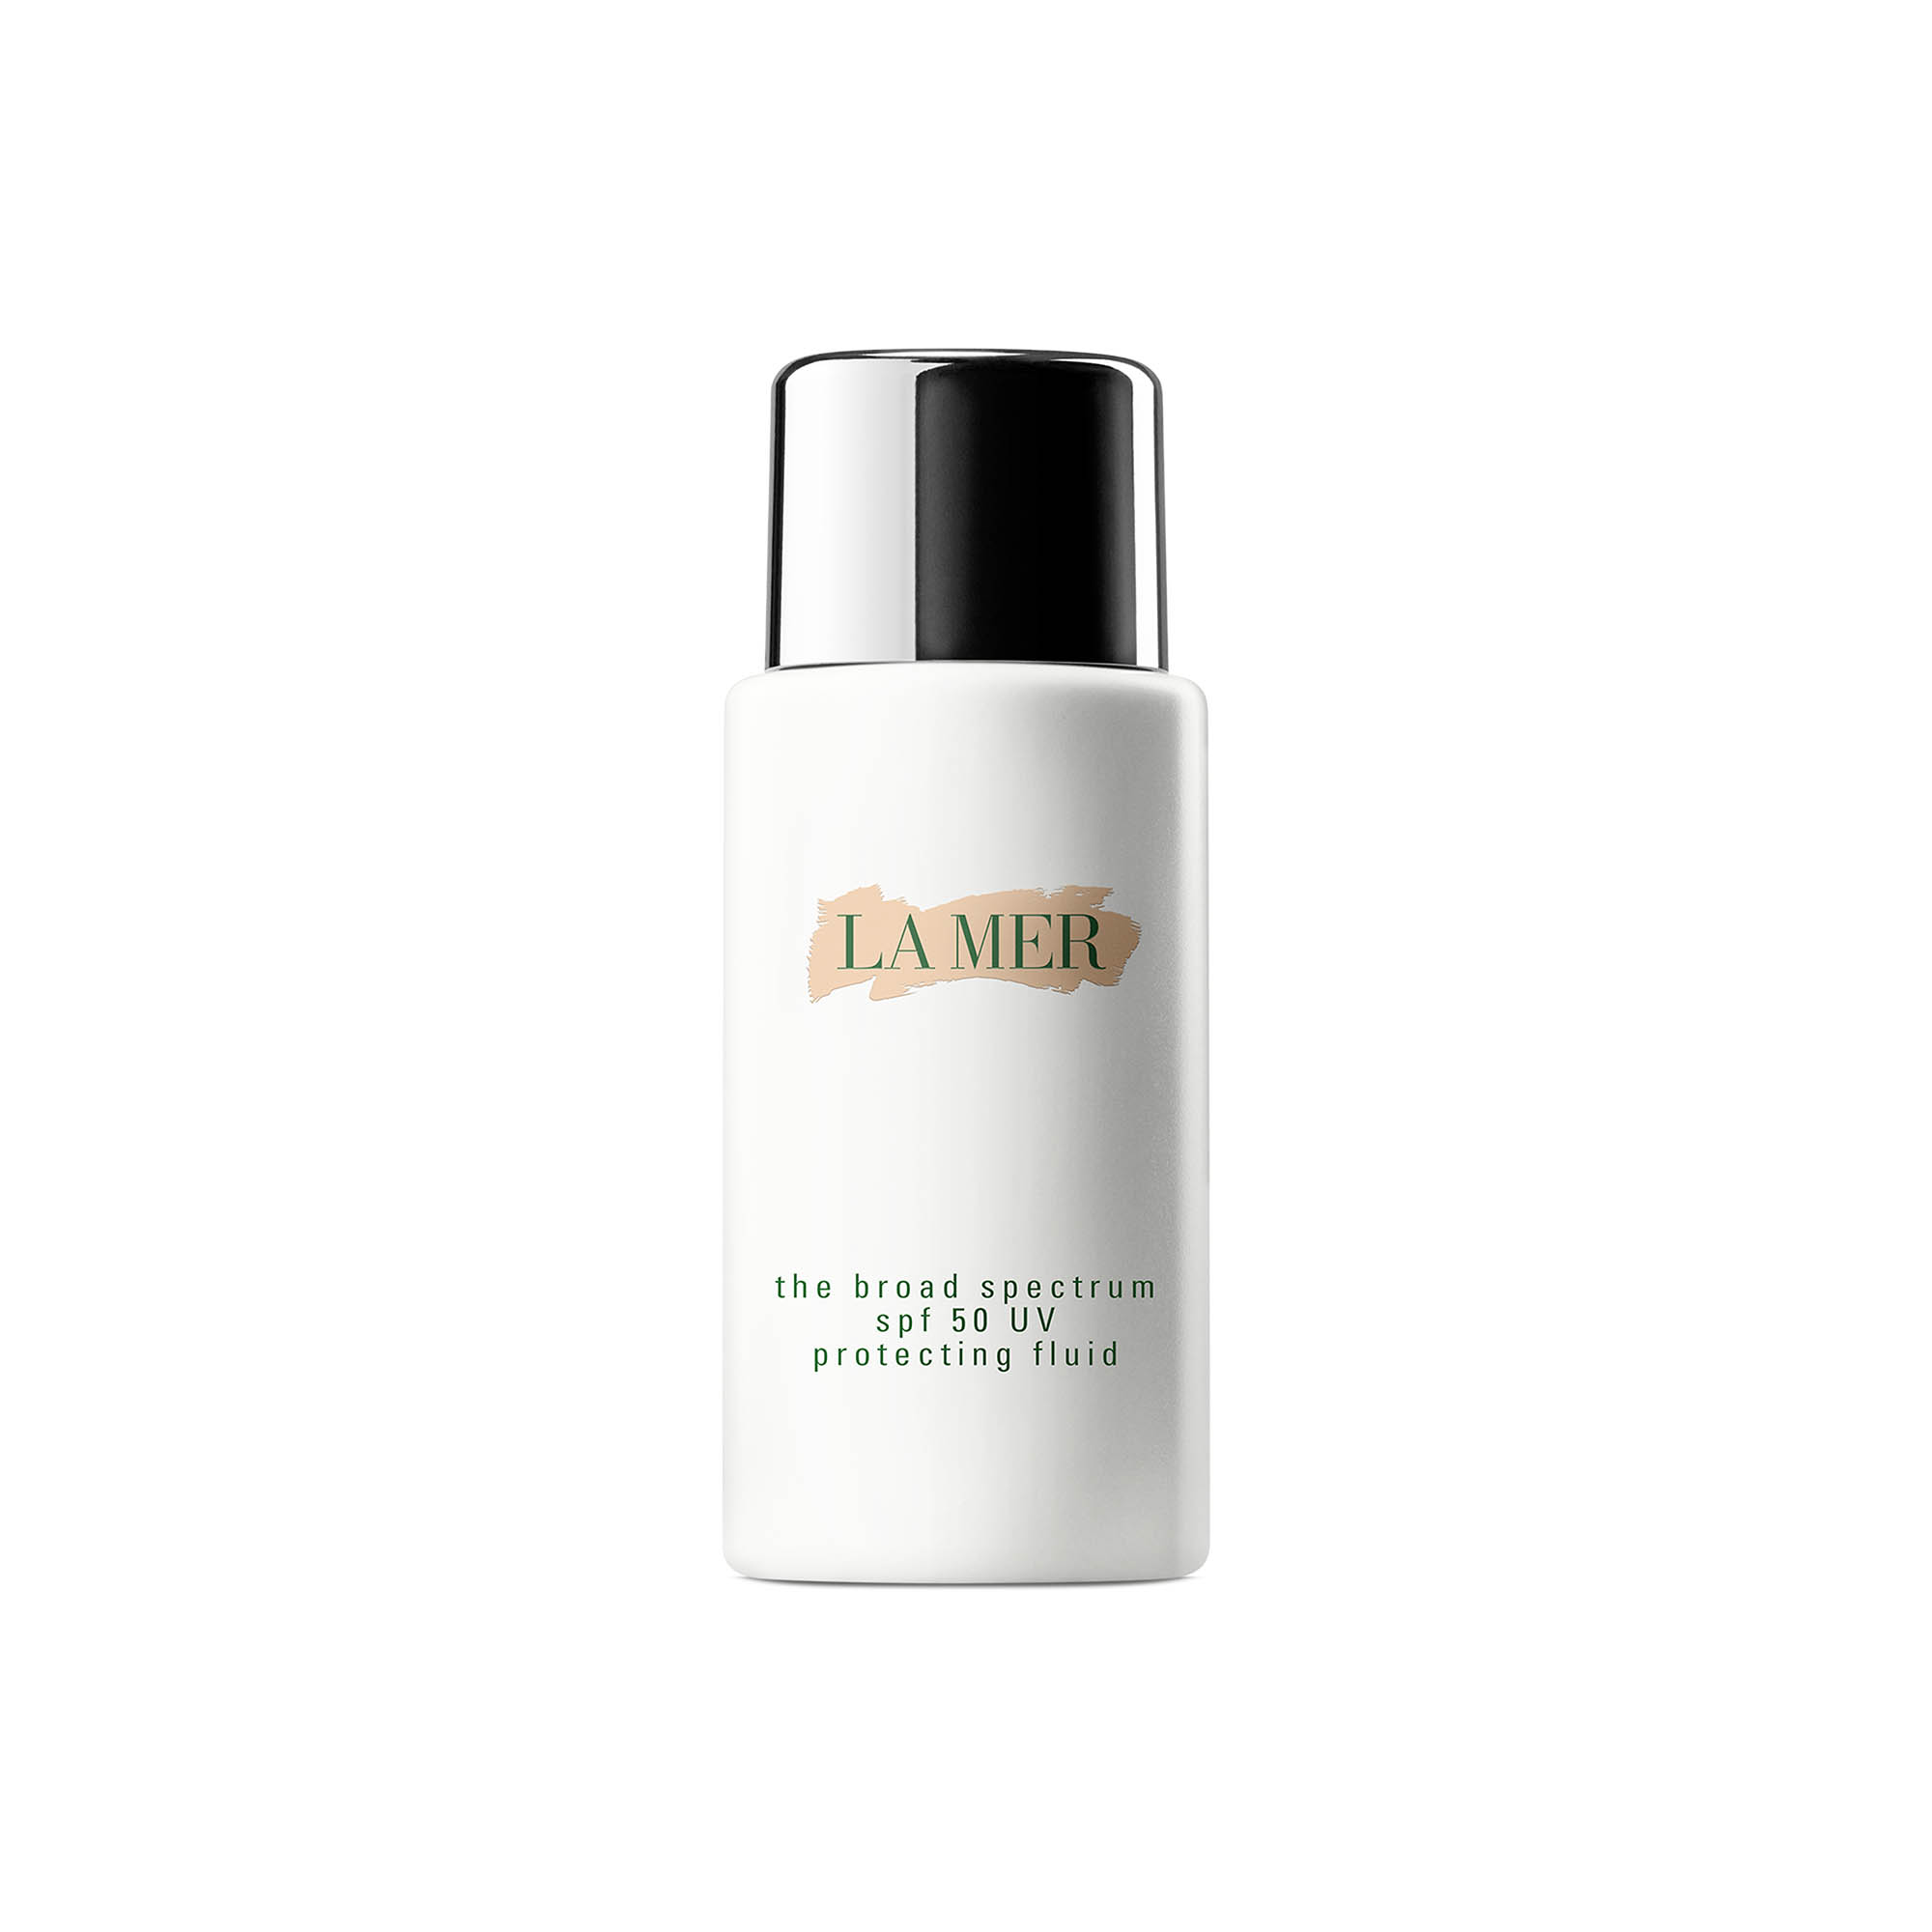 The SPF 50 UV Protecting Fluid 50 ml